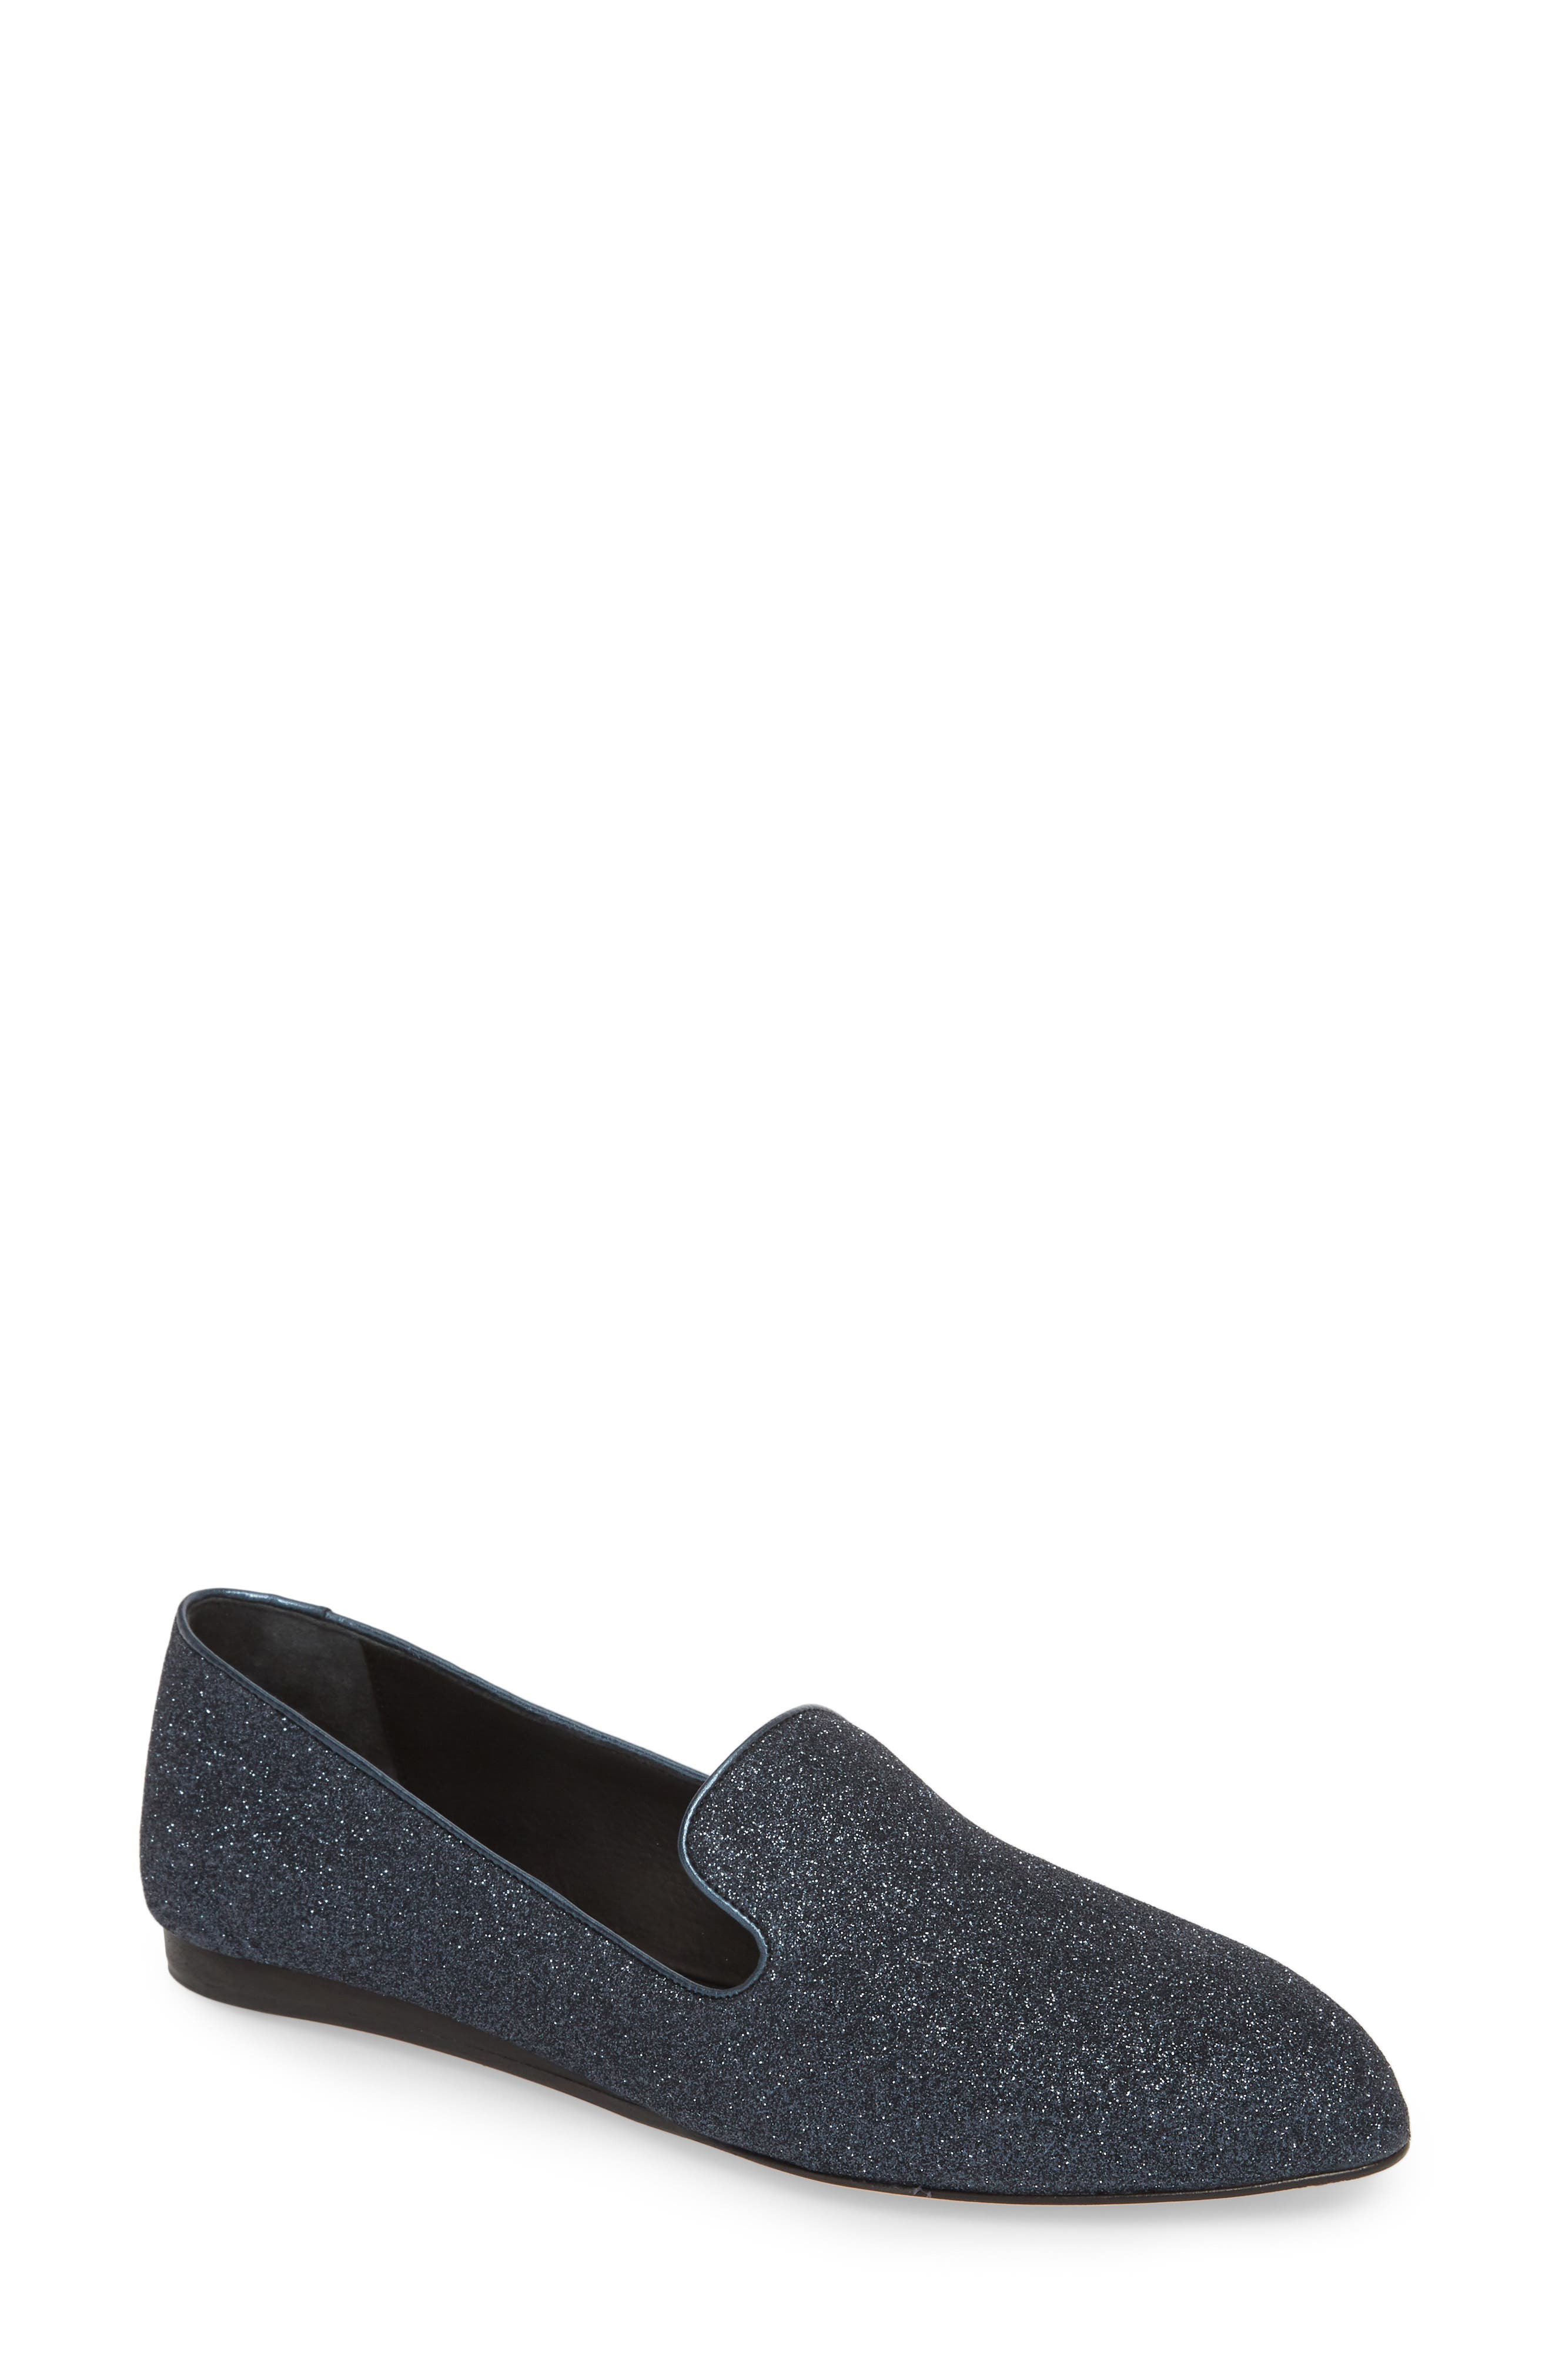 Griffin Pointy Toe Loafer,                             Main thumbnail 1, color,                             Midnight